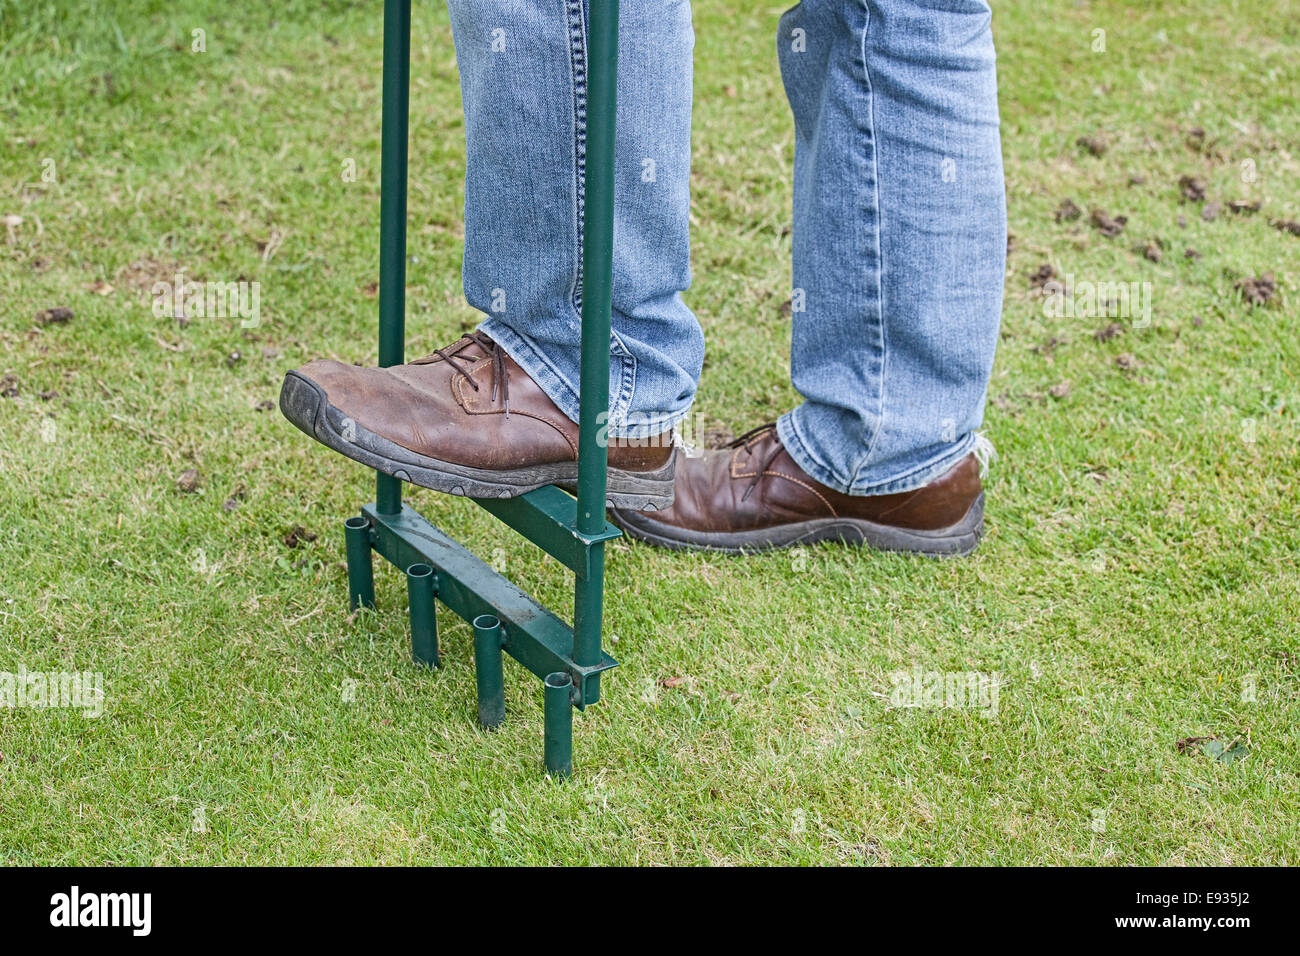 aerating lawn using hollow tine tool - Stock Image